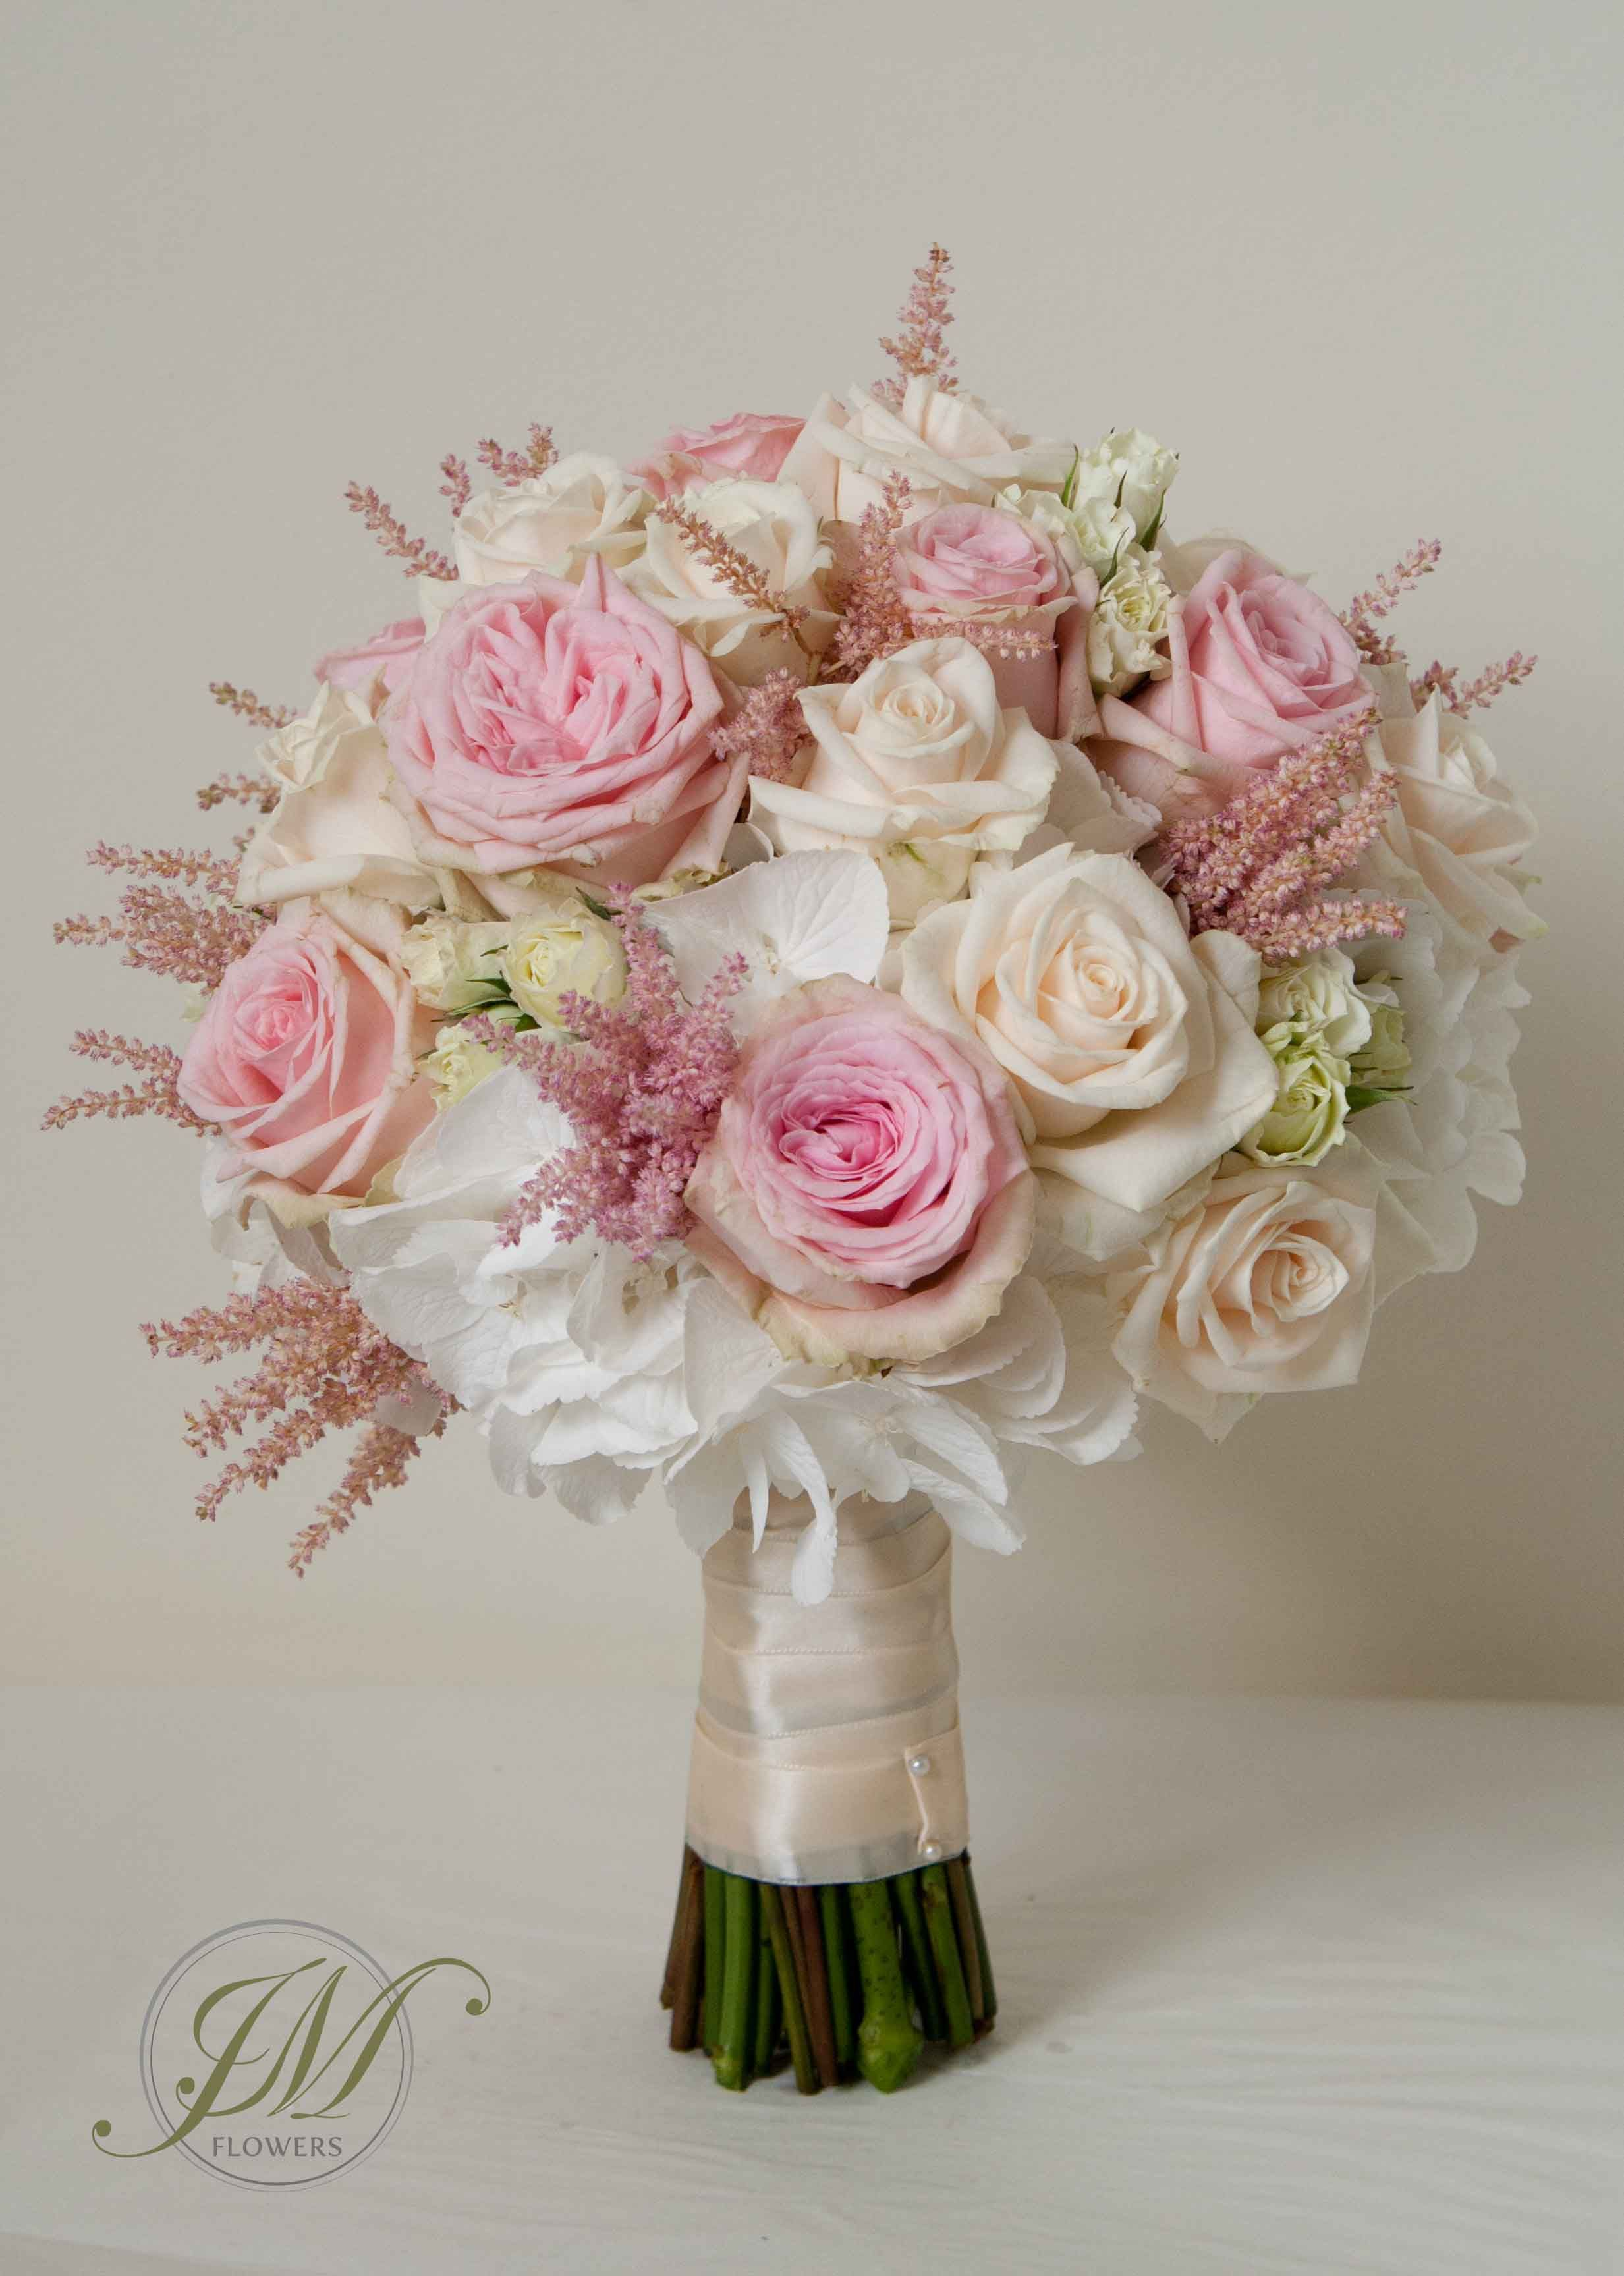 White Pale Pink And Cream Bridal Bouquet Made Of Pink Roses Cream